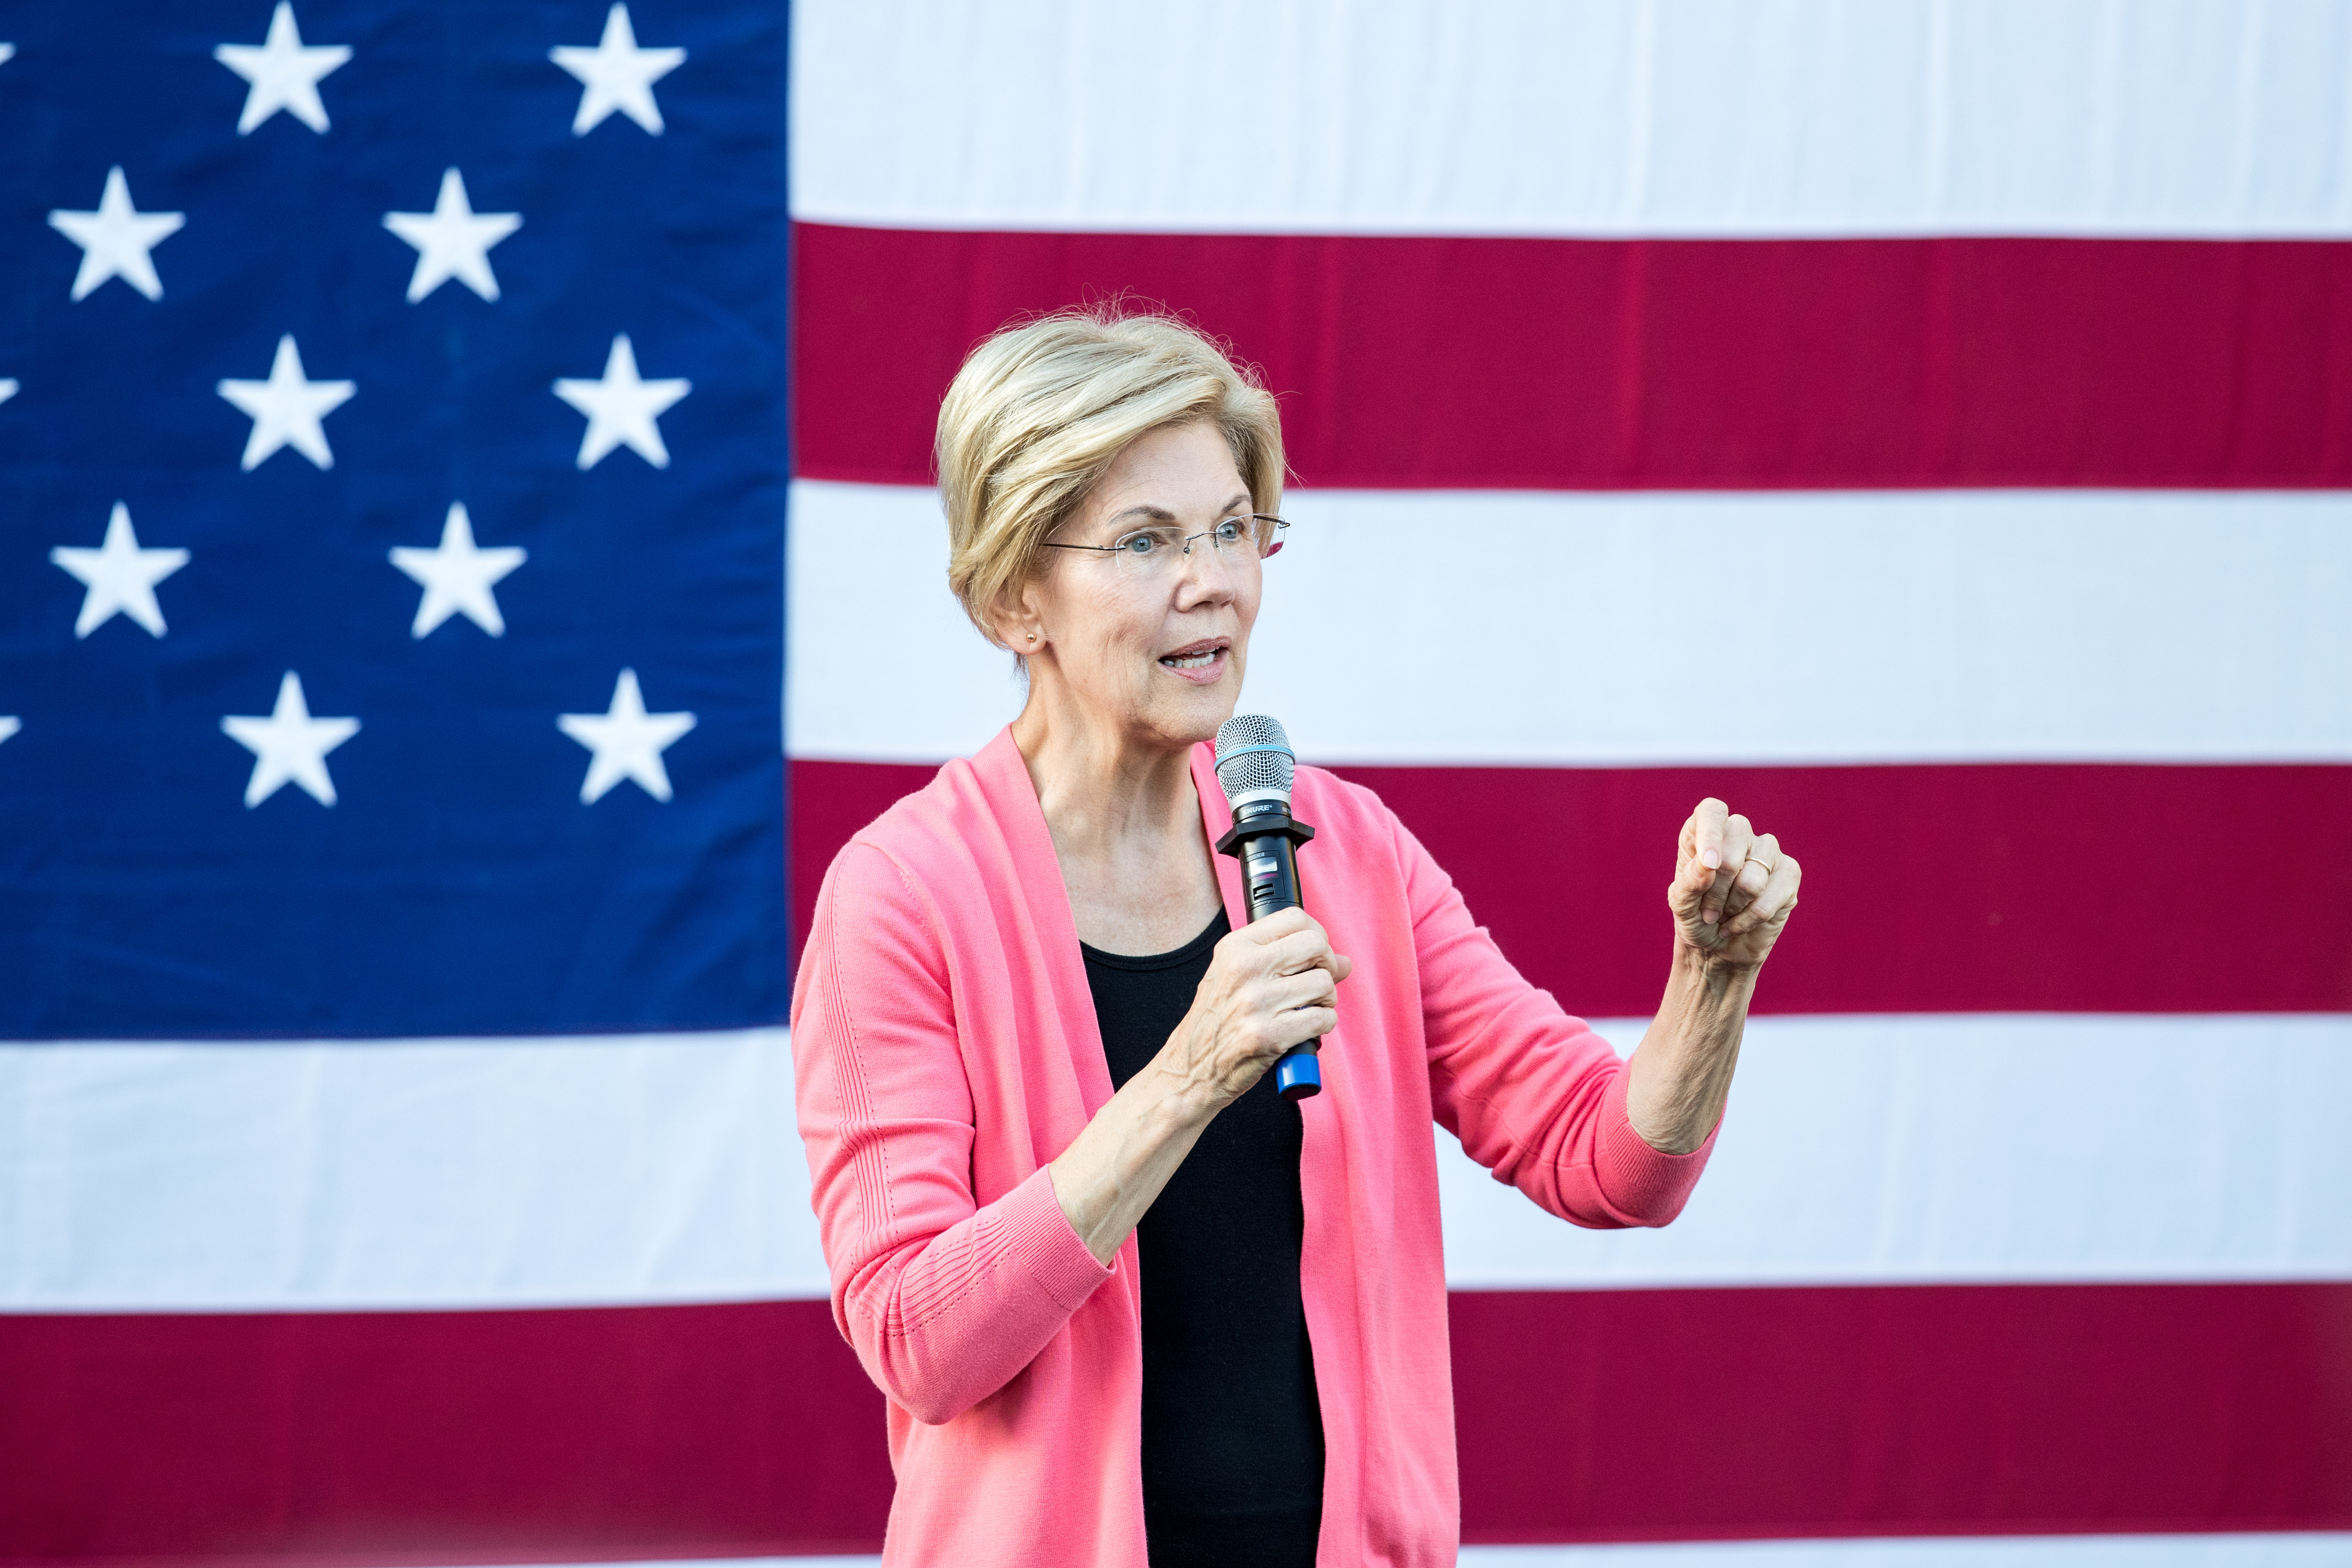 Democratic presidential candidate Sen. Elizabeth Warren (D-MA) speaks during a Town Hall at Keene State College on Sept. 25, 2019 in Keene, New Hampshire.